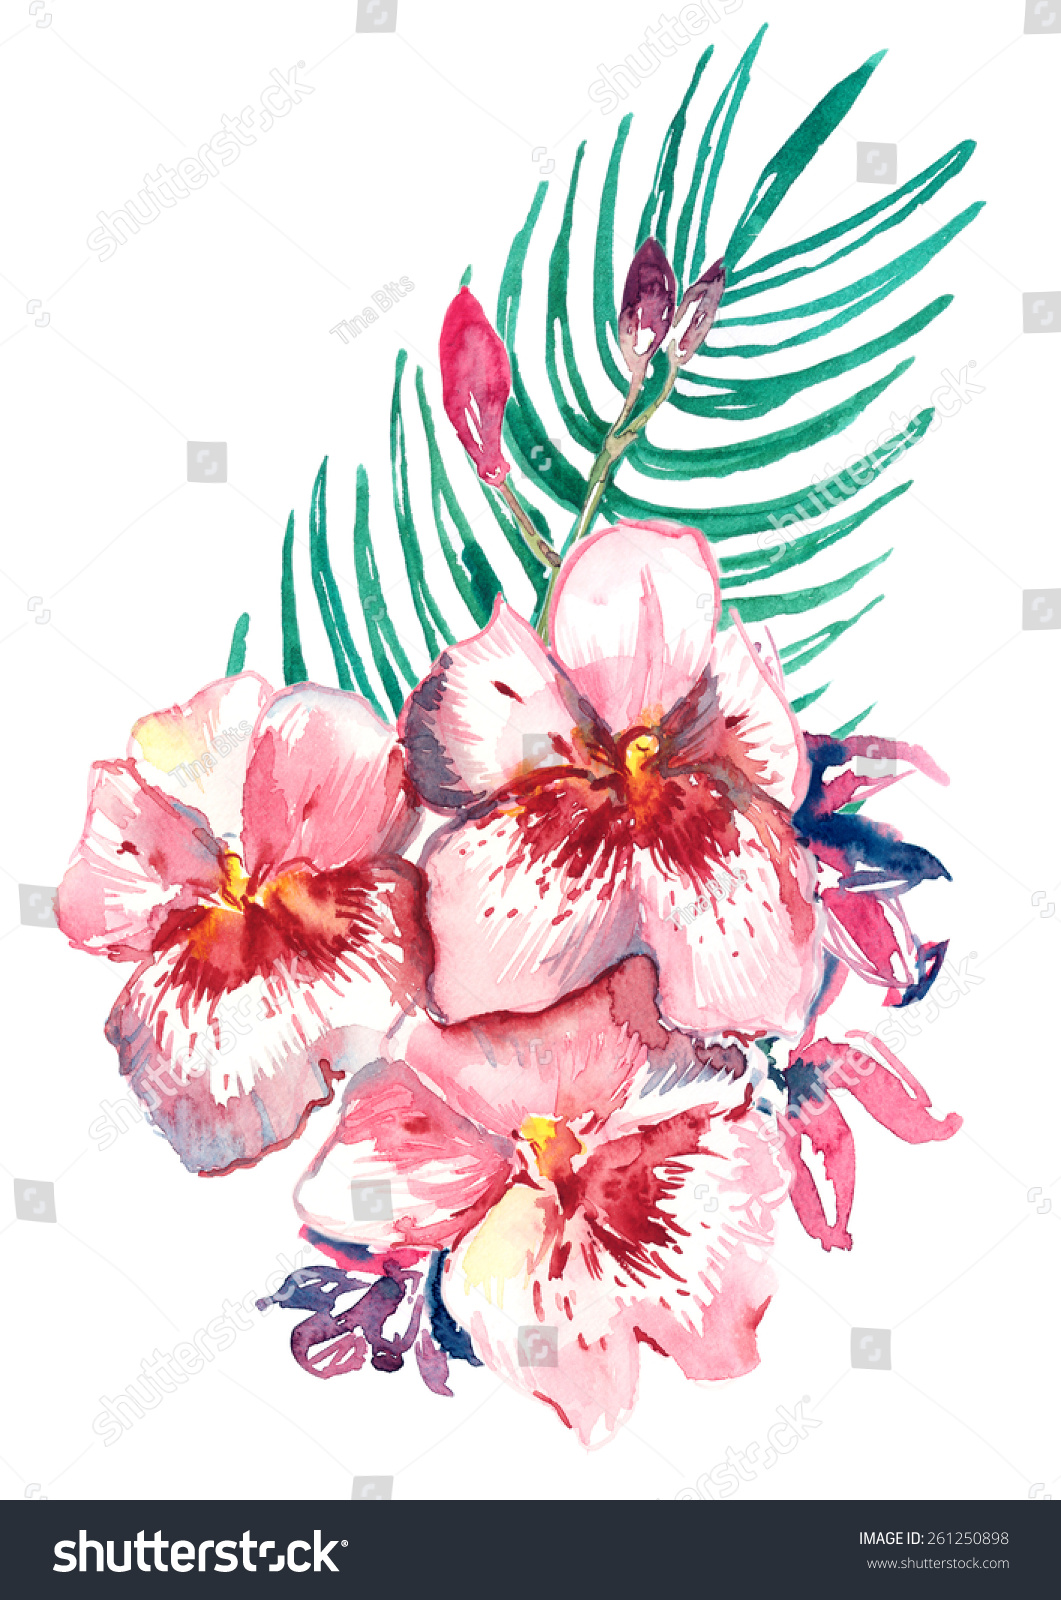 Royalty Free Bunch Of Pink And Purple Flowers And 261250898 Stock